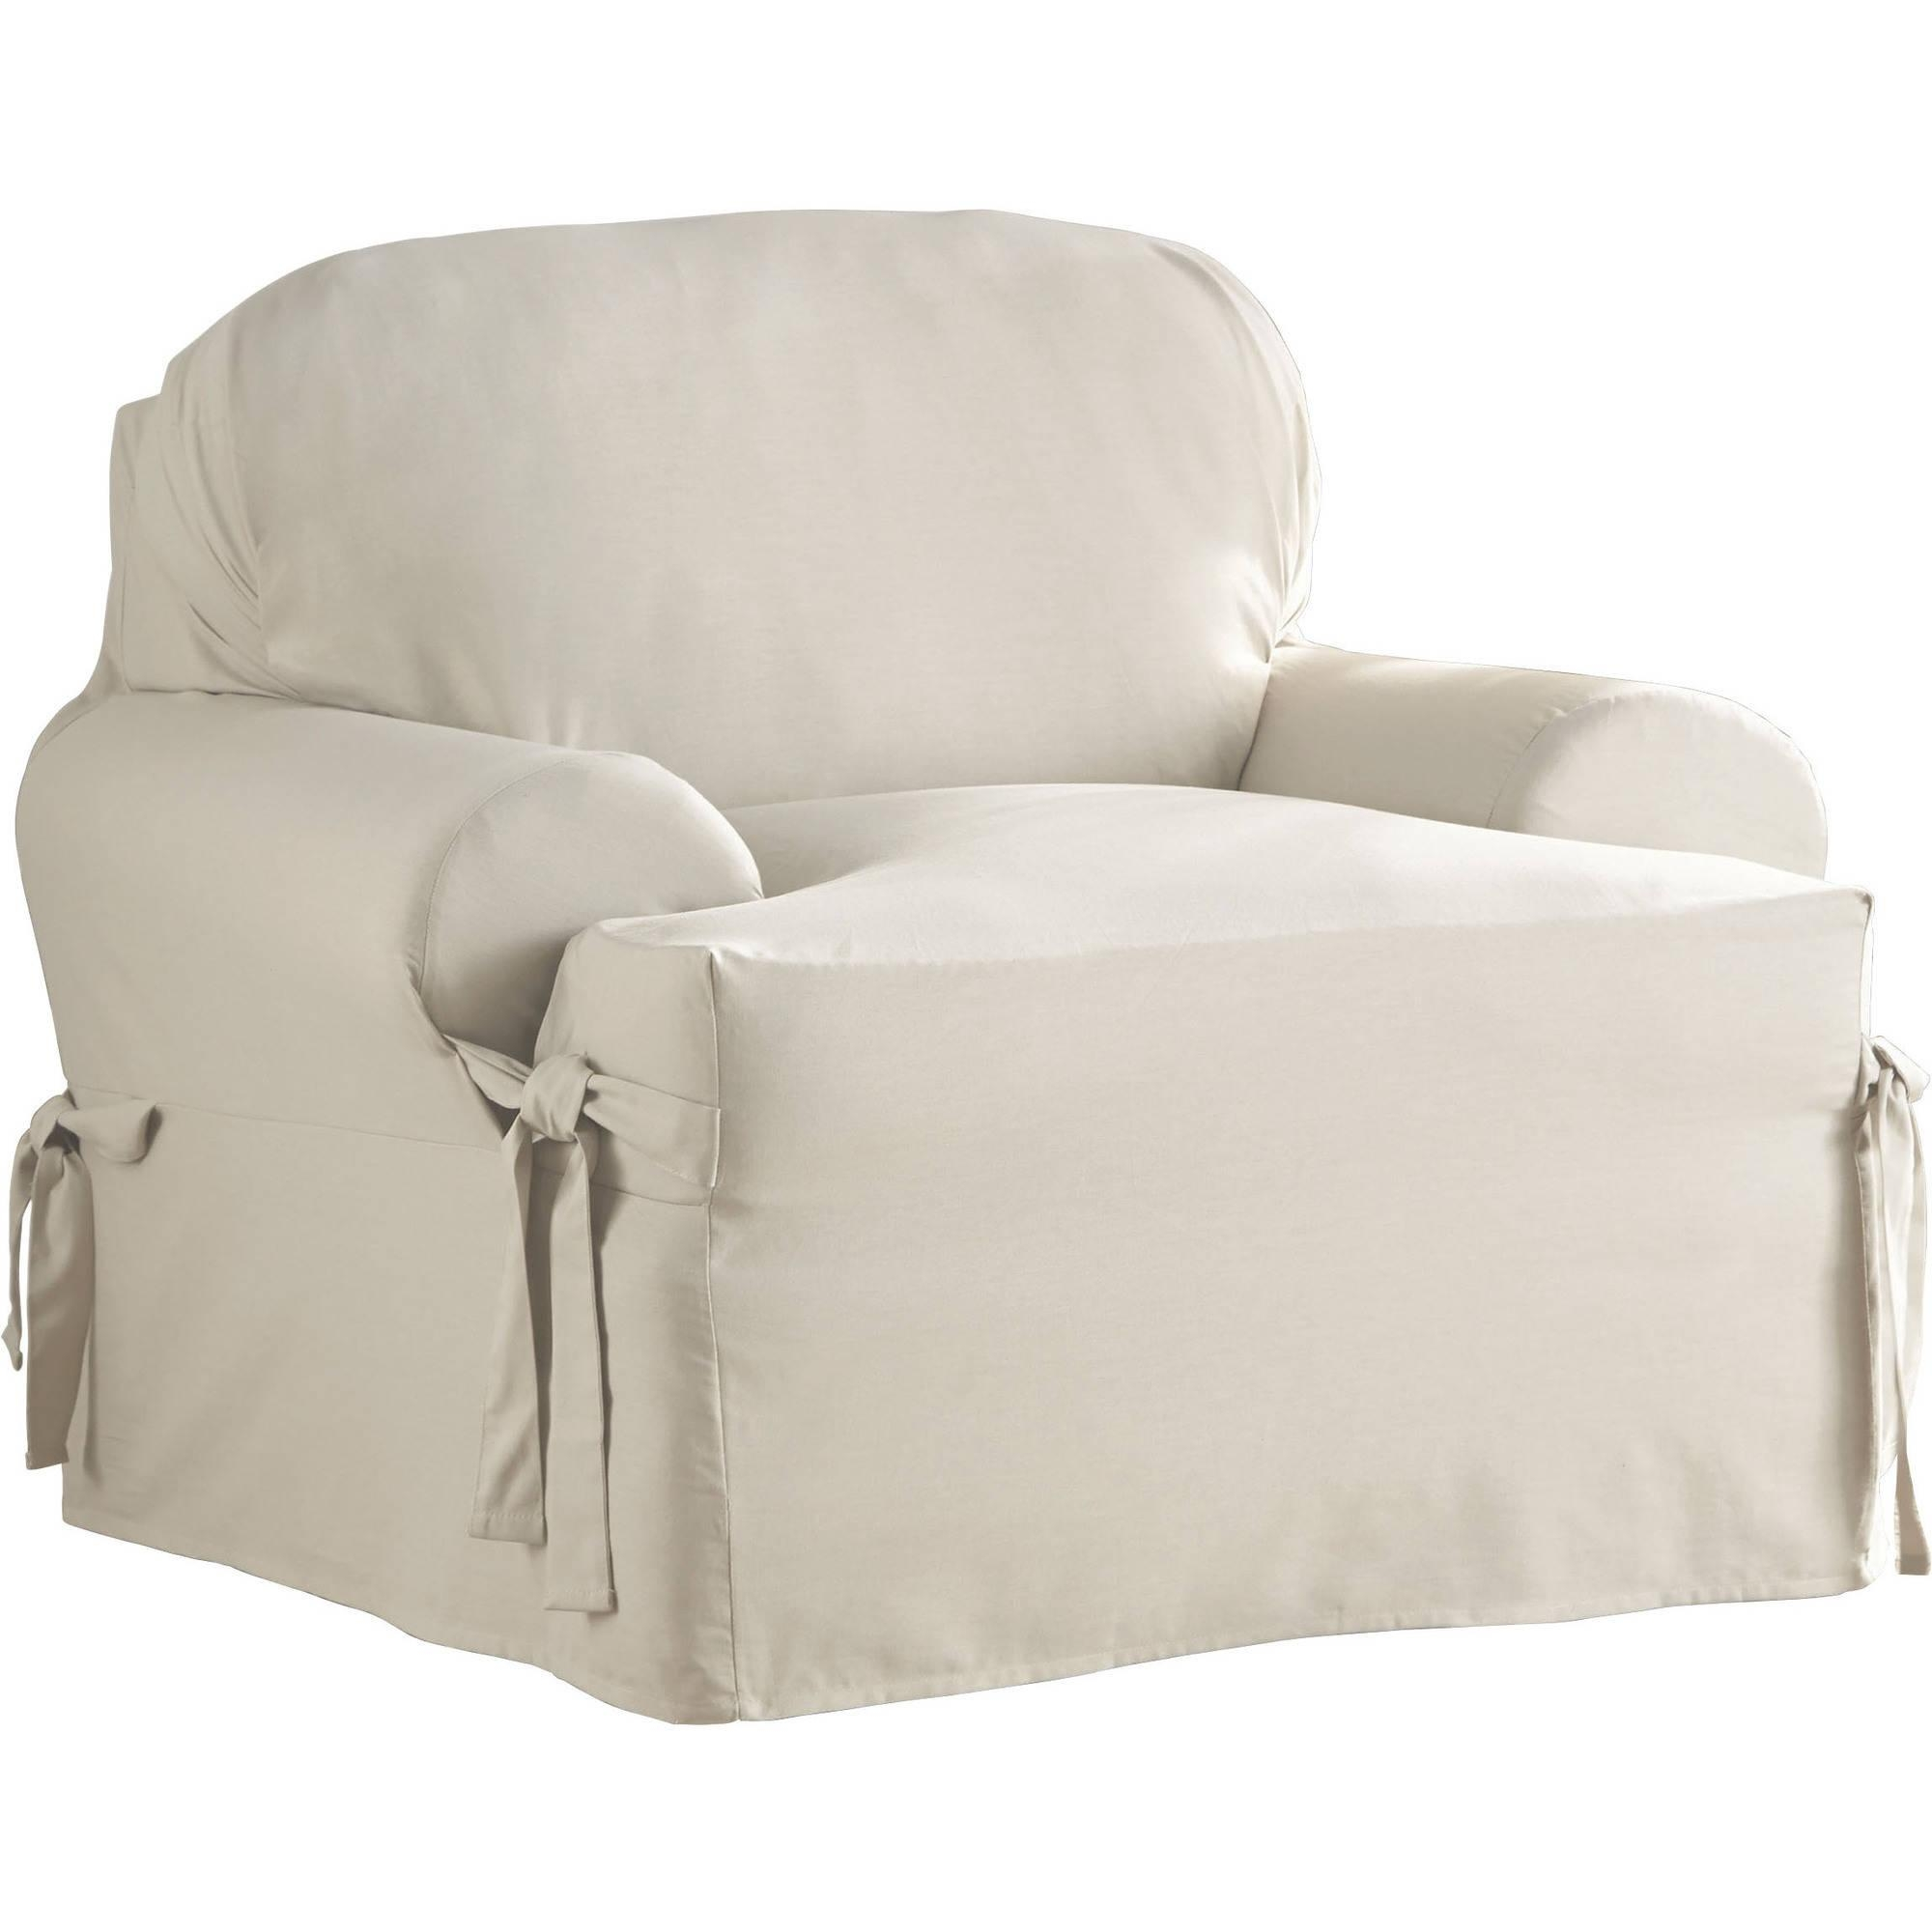 Slipcovers – Walmart Regarding Slipcovers For Chairs And Sofas (Image 18 of 20)